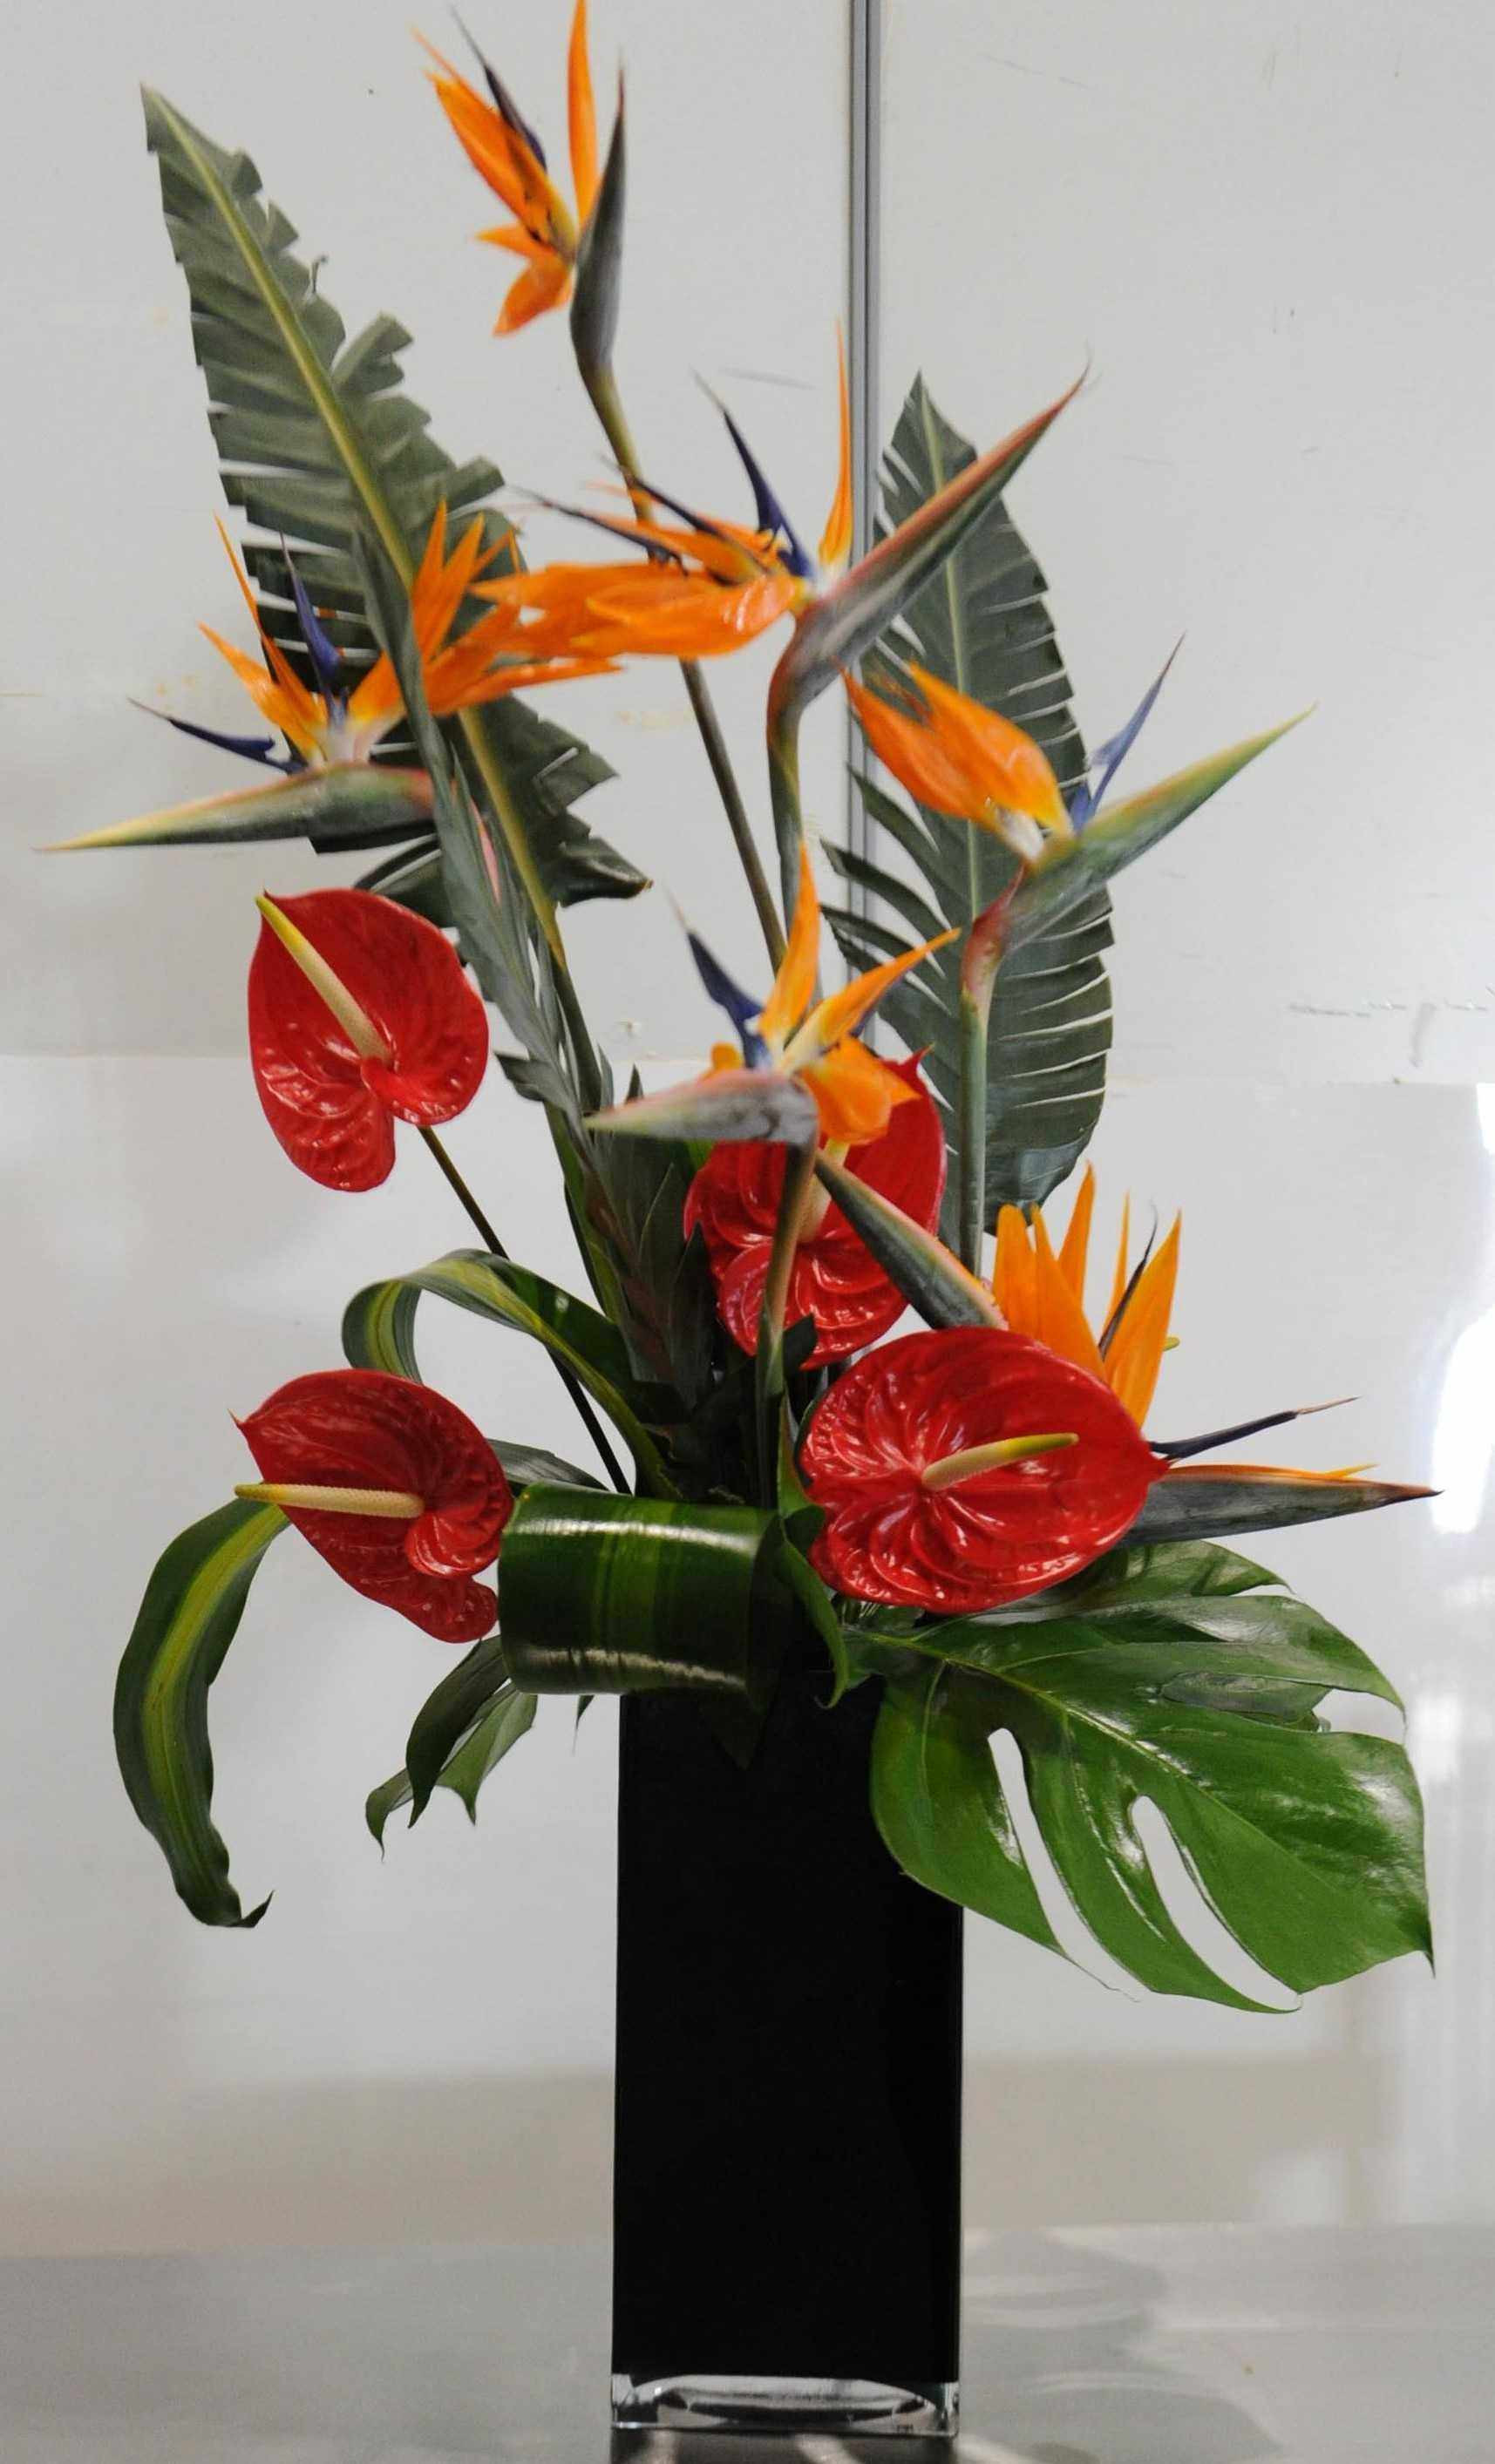 silver vase with artificial flowers of artificial flower arrangements in vases unique 60 od bird paradise pertaining to artificial flower arrangements in vases unique 60 od bird paradise red anthurium mixed foliage